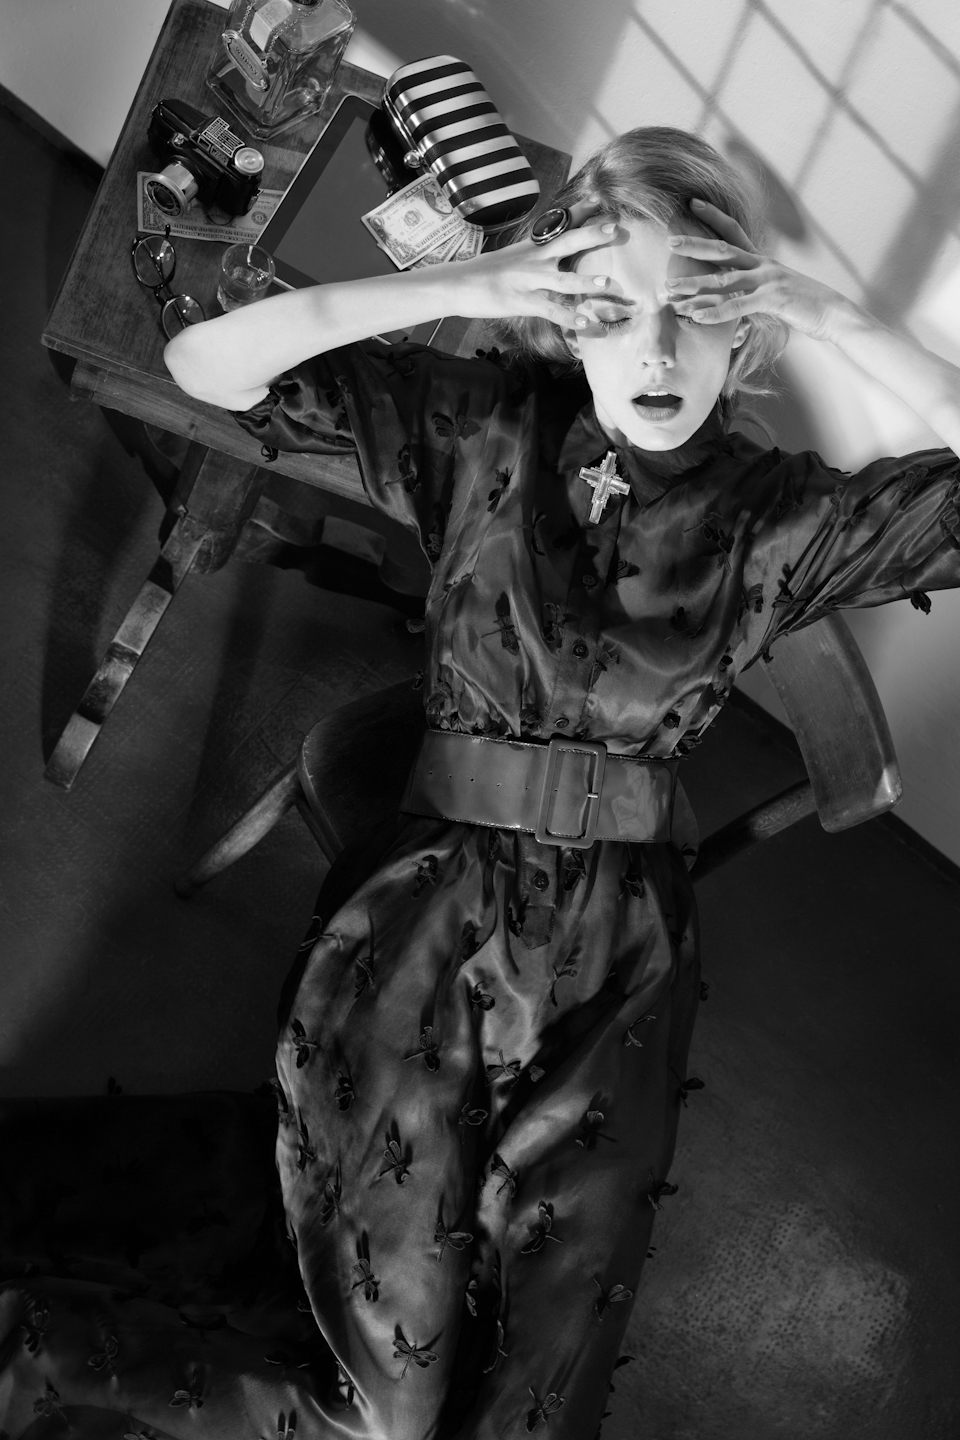 A Touch of Noir - Fashion editorial for Switch Magazine - Galli / Trevisan photographers